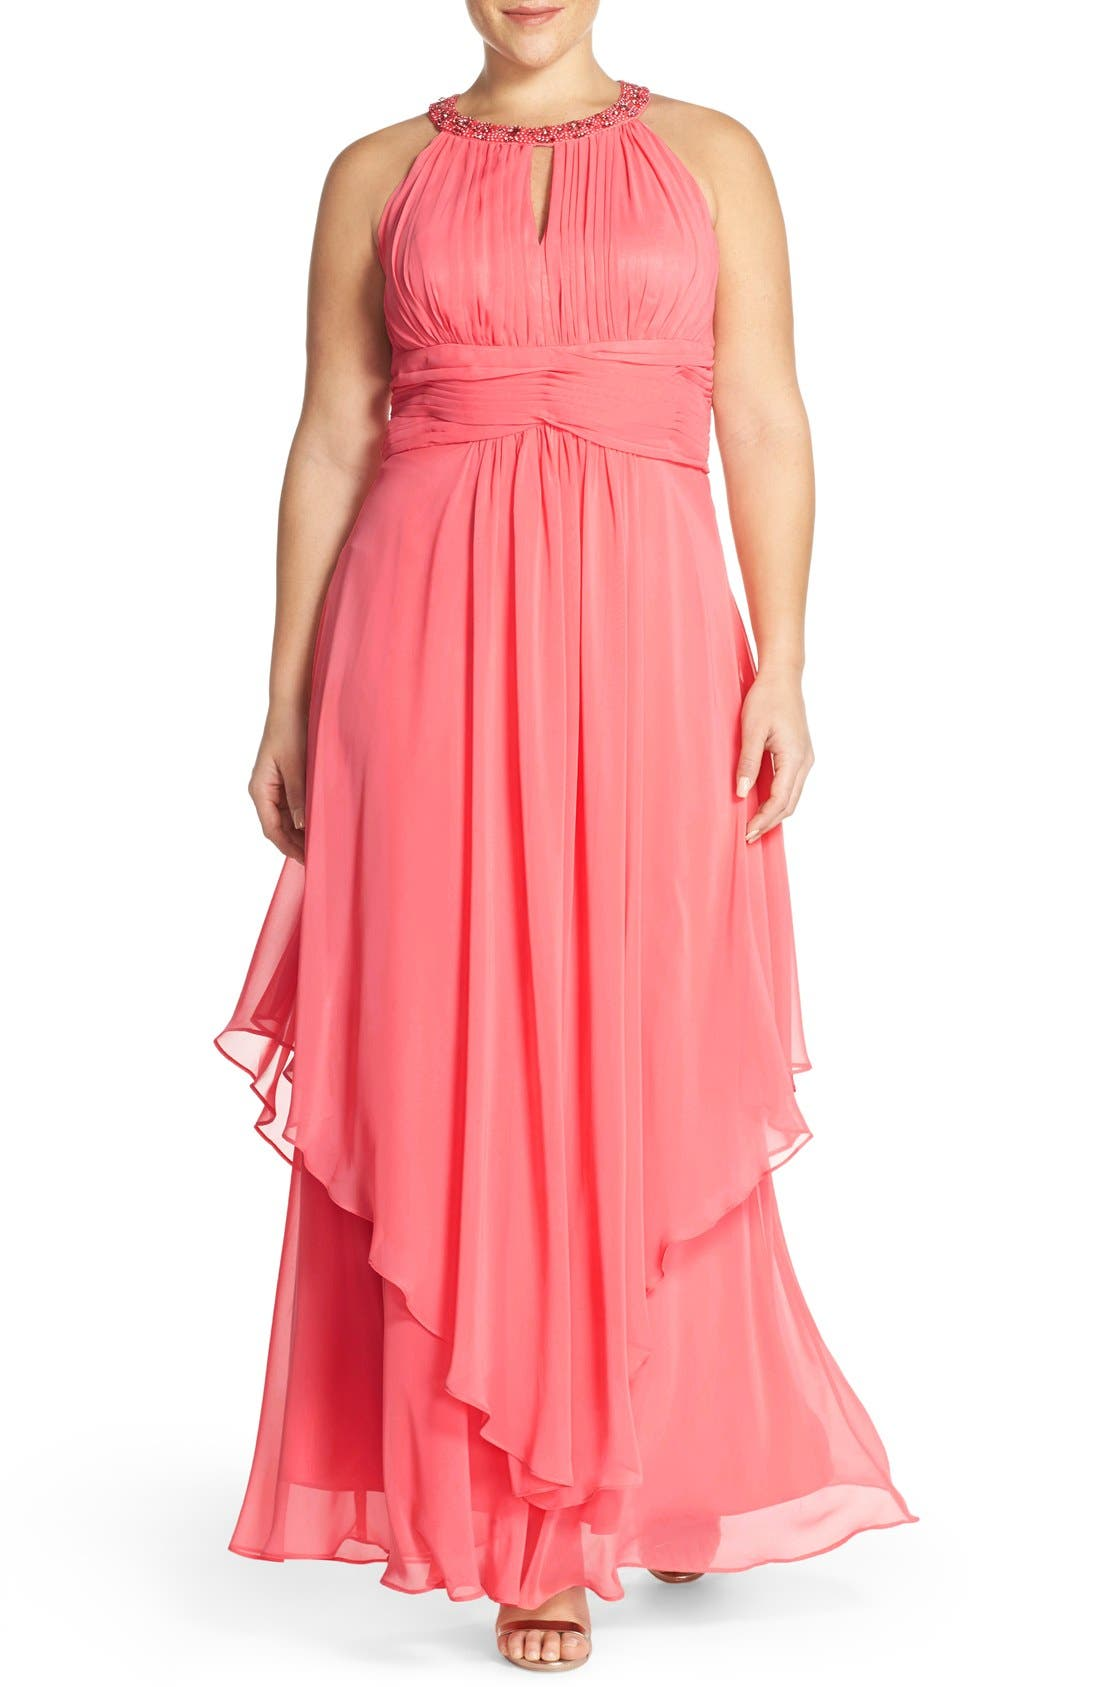 Alternate Image 1 Selected - Eliza J Embellished Keyhole Neck Chiffon Gown (Plus Size)